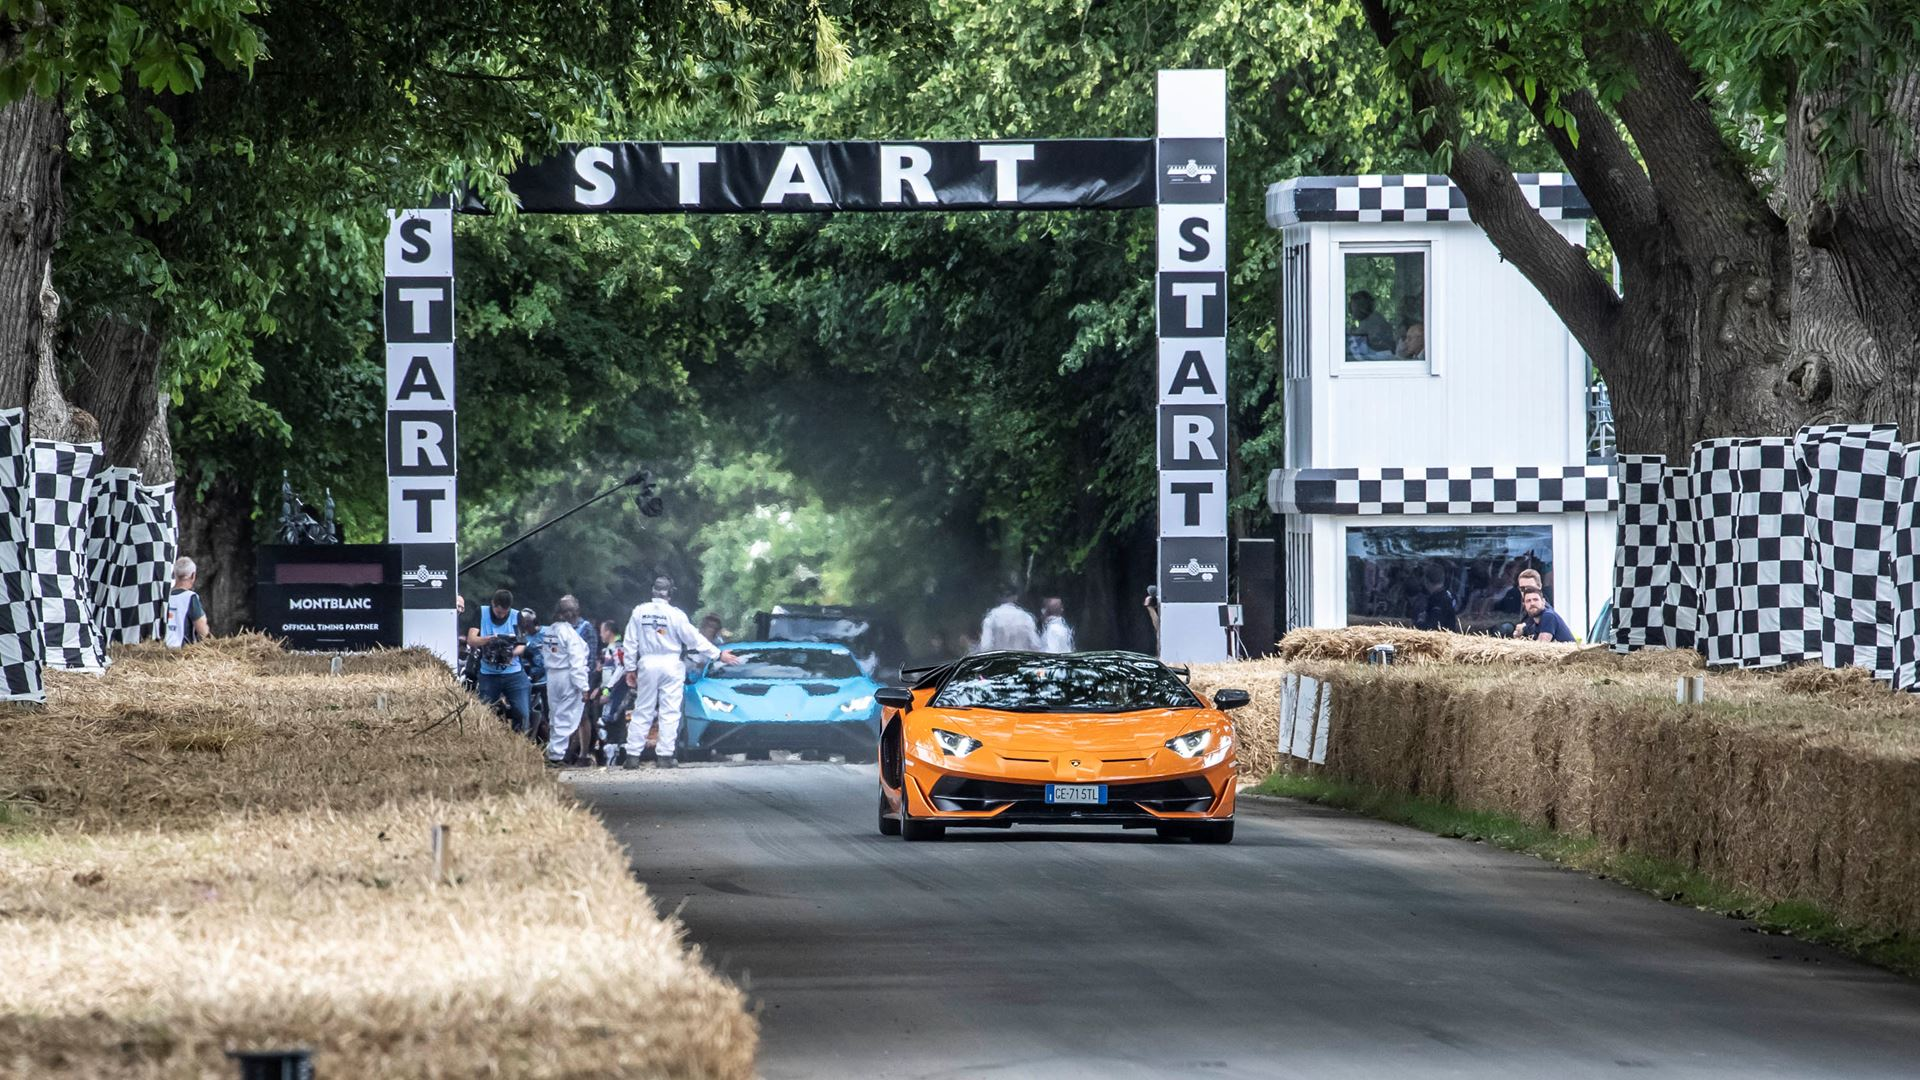 Automobili Lamborghini celebrates V12 and its Squadra Corse motorsport prowess on road and track, at Goodwood Festival of Speed 2021 - Image 3